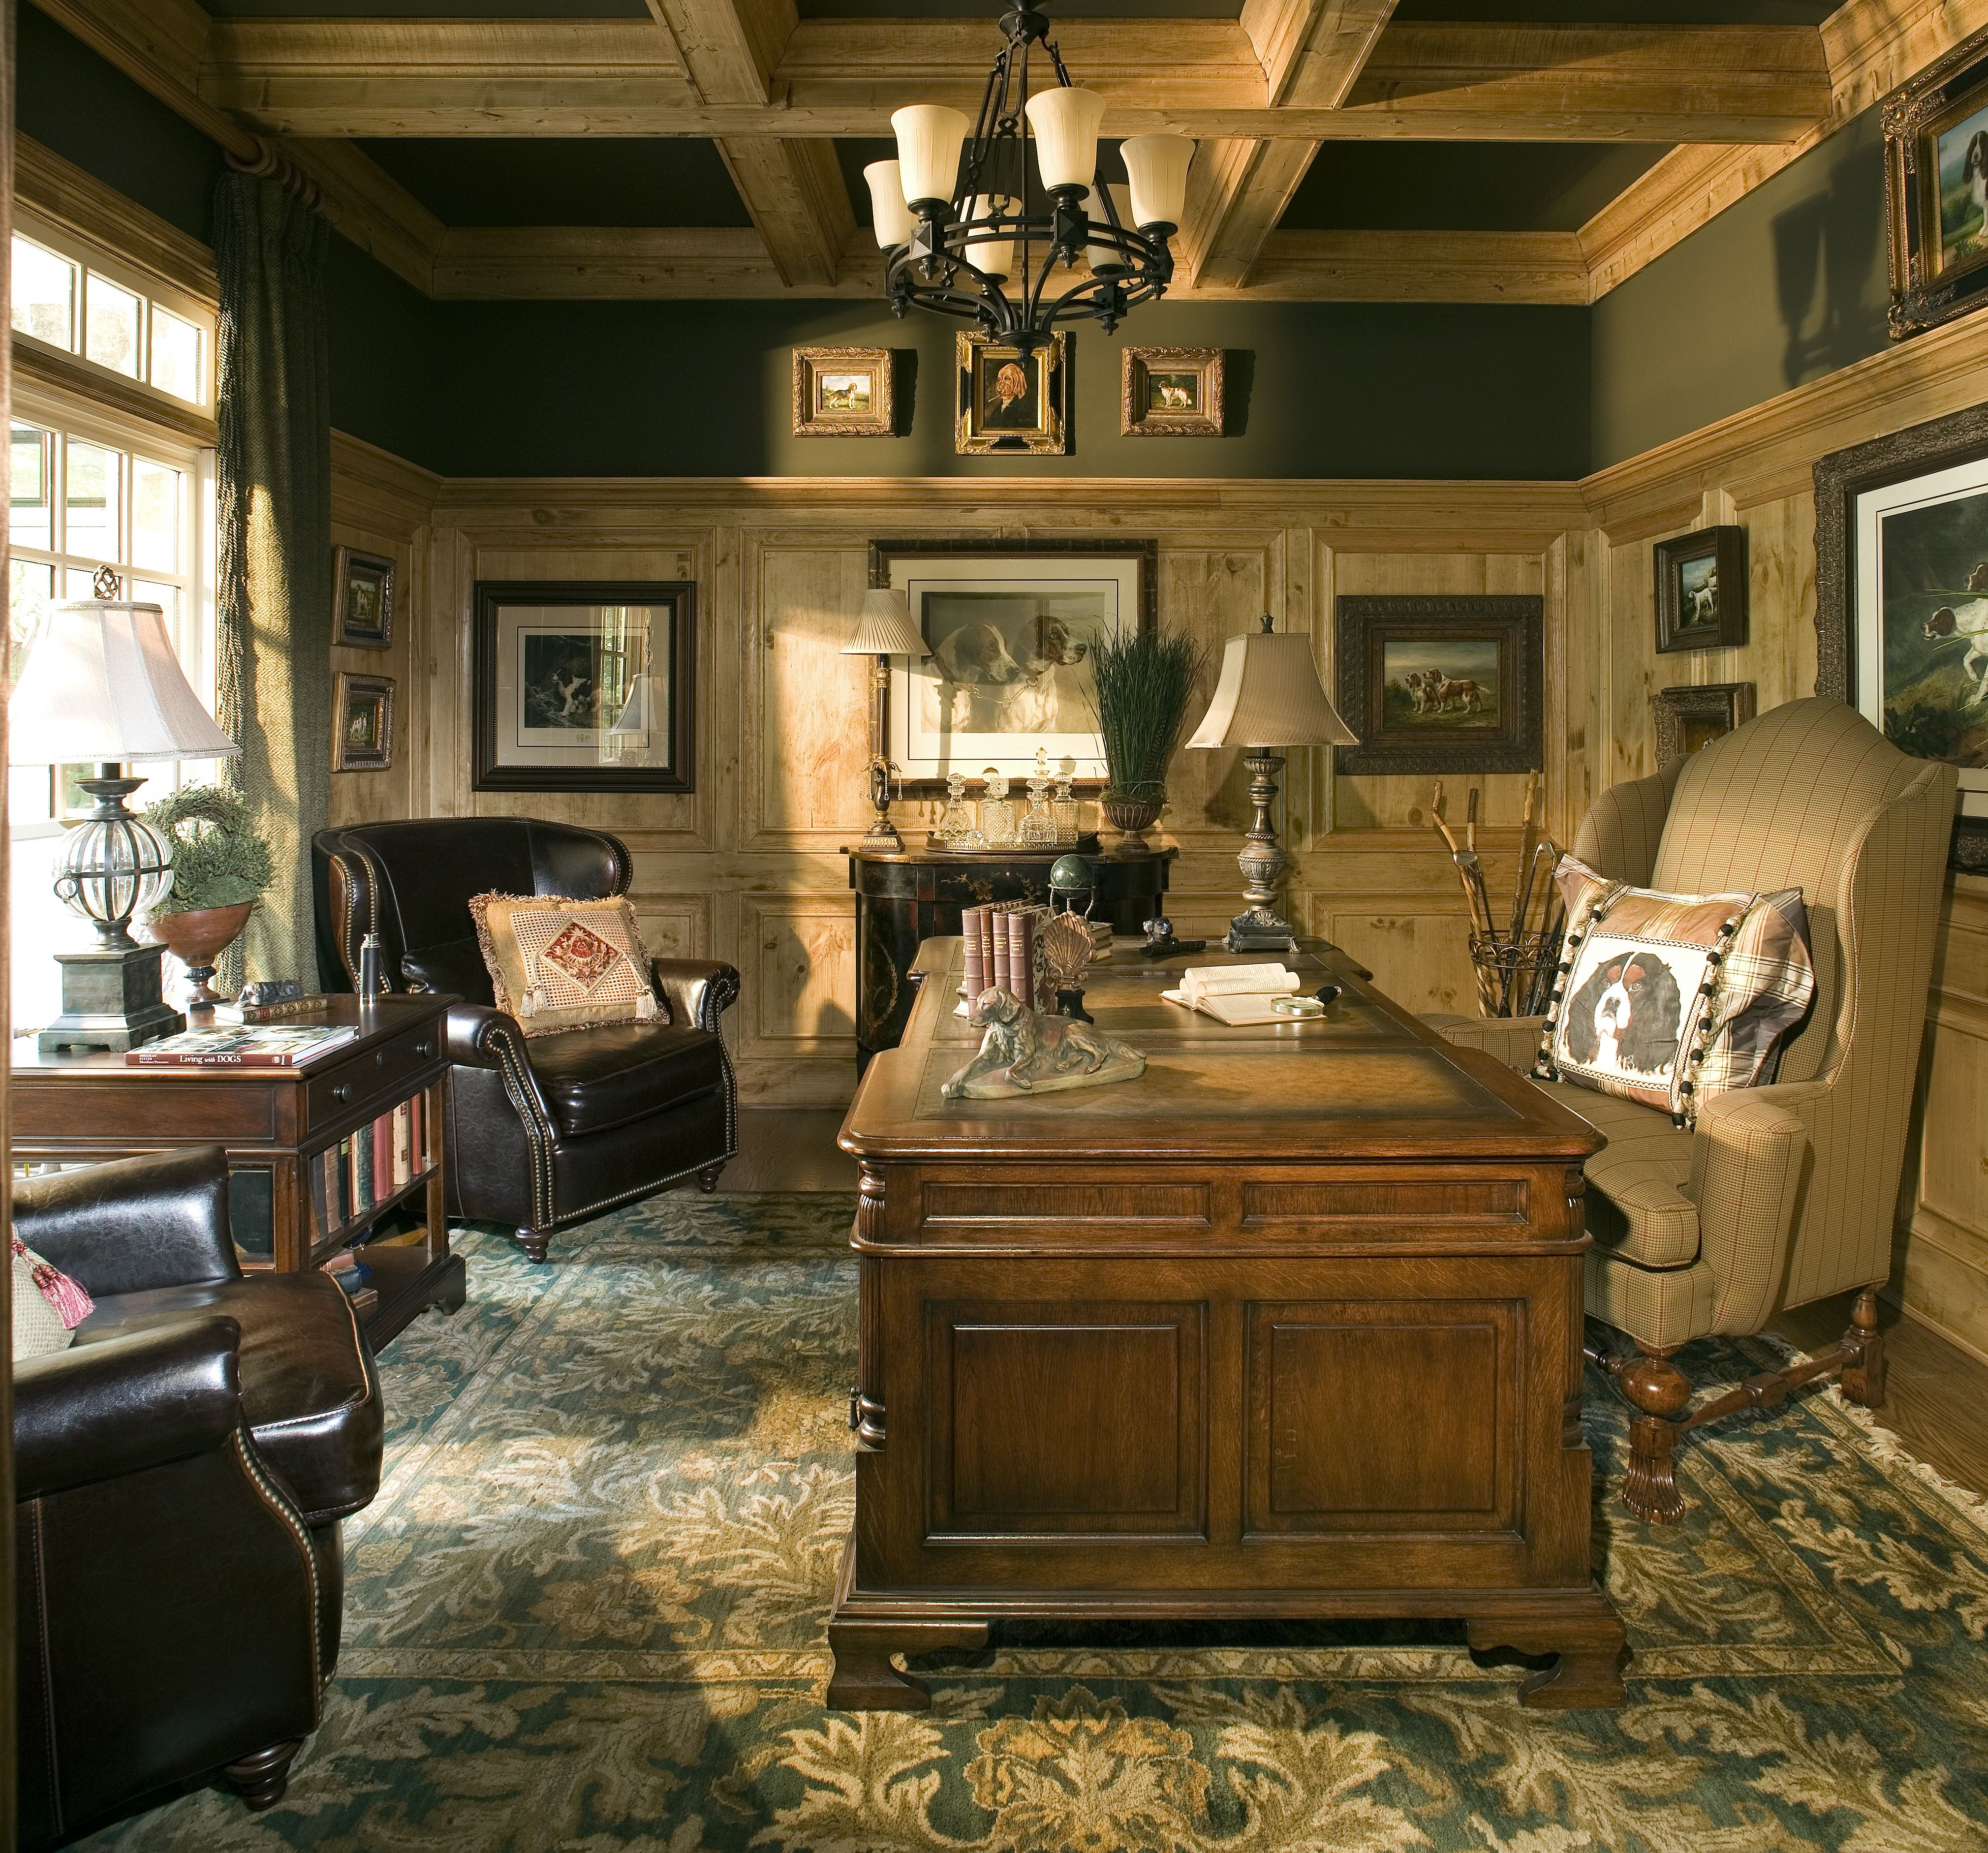 Can I Paint The Dark Wood Paneling?